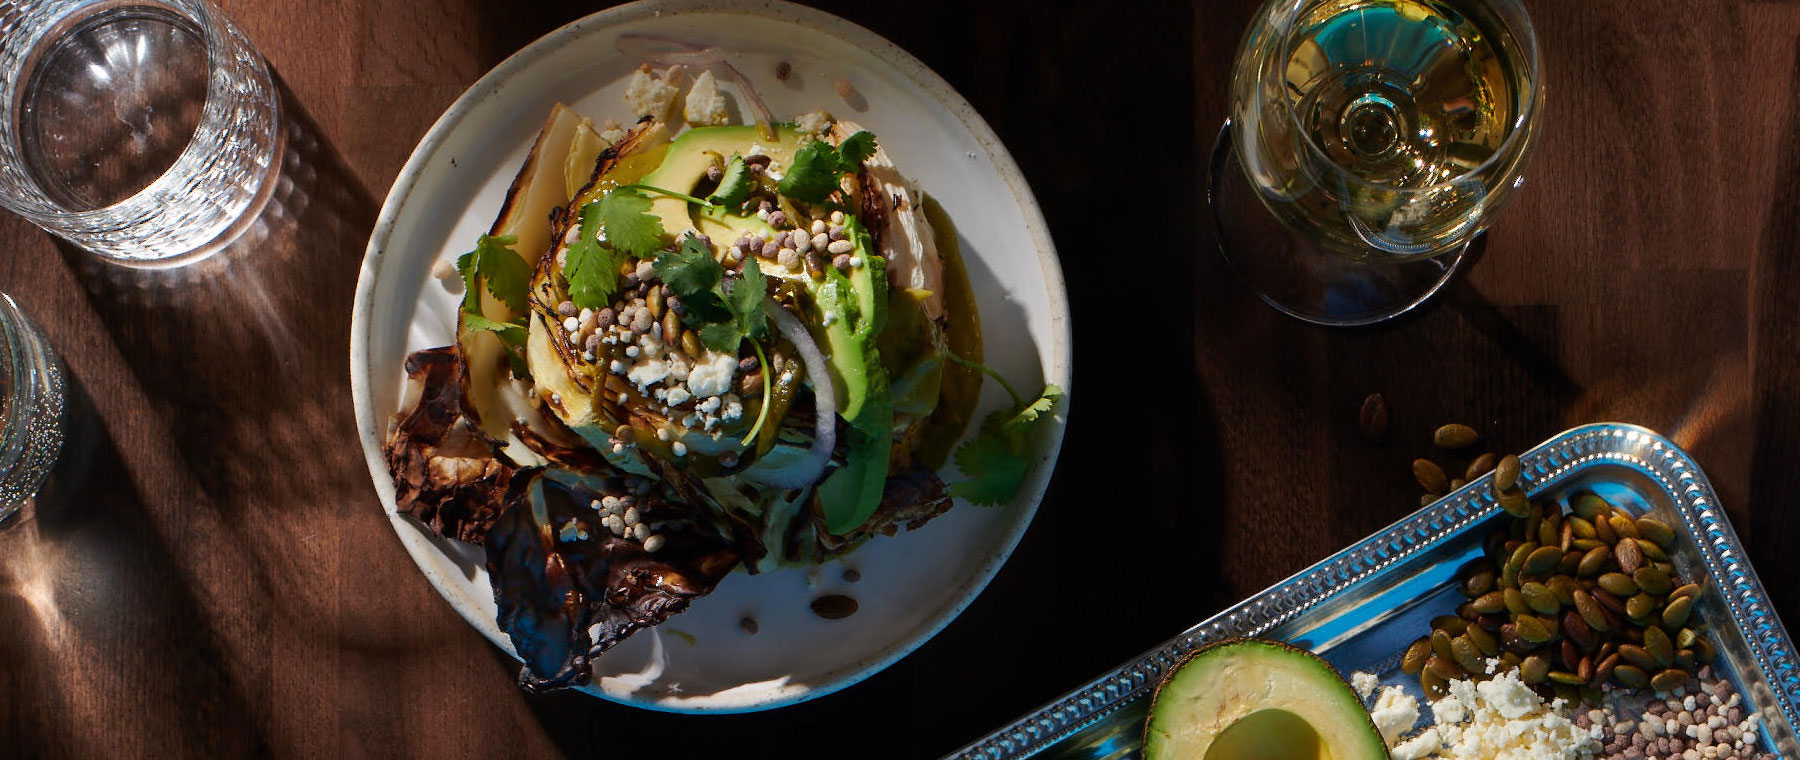 Chef Marc Doiron of Town shares a recipe for charred cabbage with avo-poblano dressing